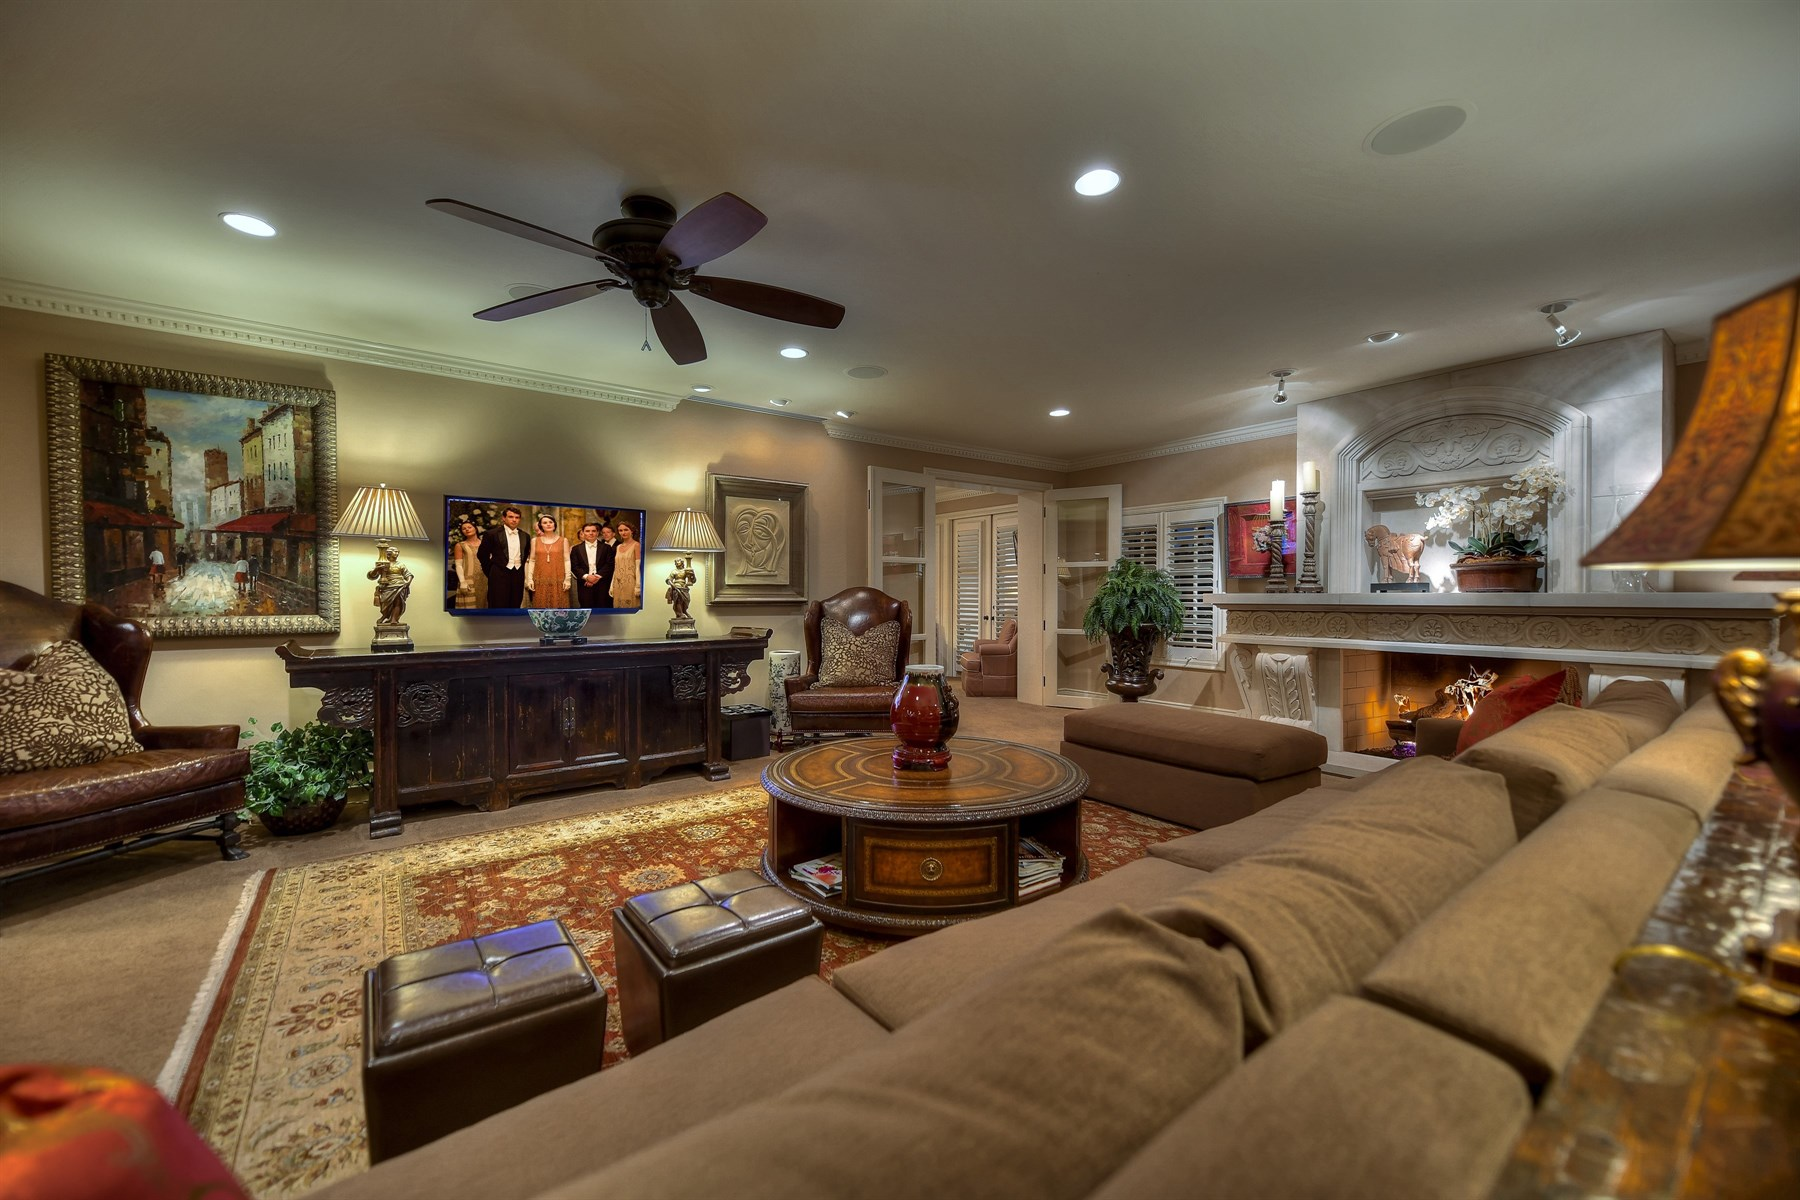 Additional photo for property listing at The crown jewel of the Biltmore Estates. 37 BILTMORE ESTATES DR,  Phoenix, Arizona 85016 United States